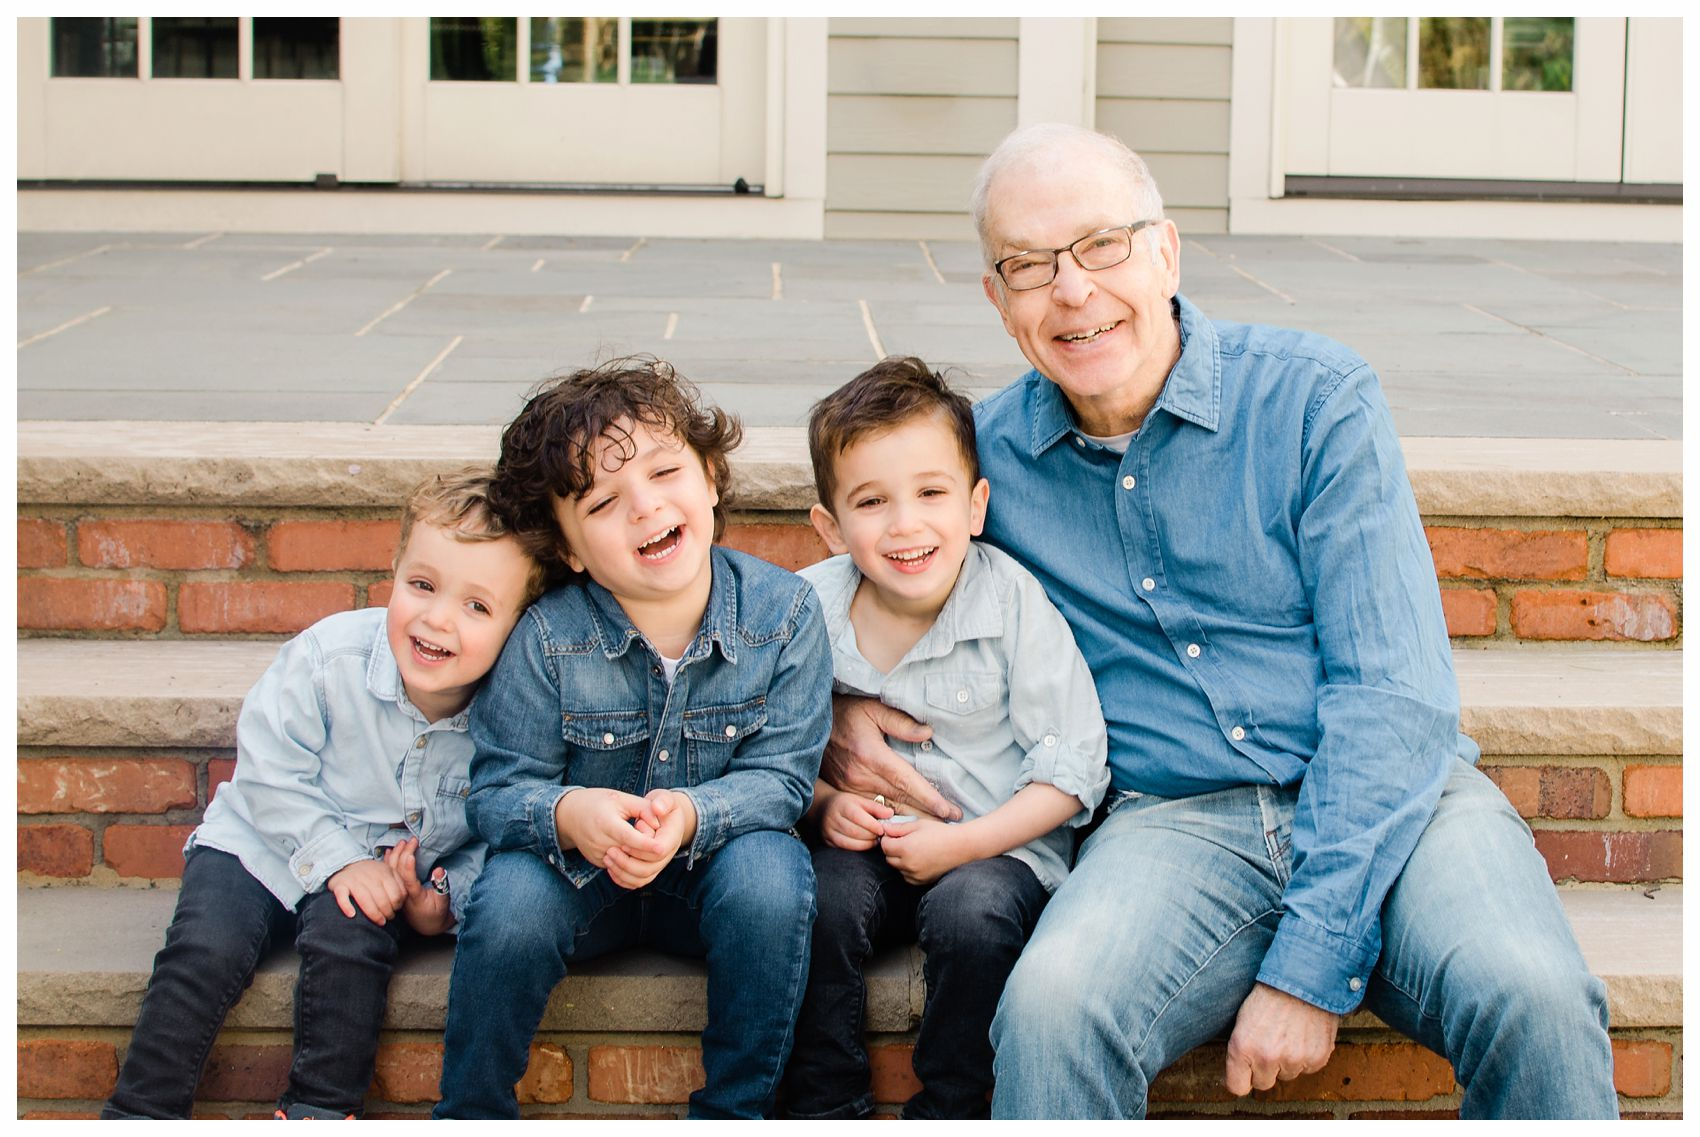 grandfather is laughing and giggling with grandsons on the steps of their home in Montclair NJ for an extended family portrait